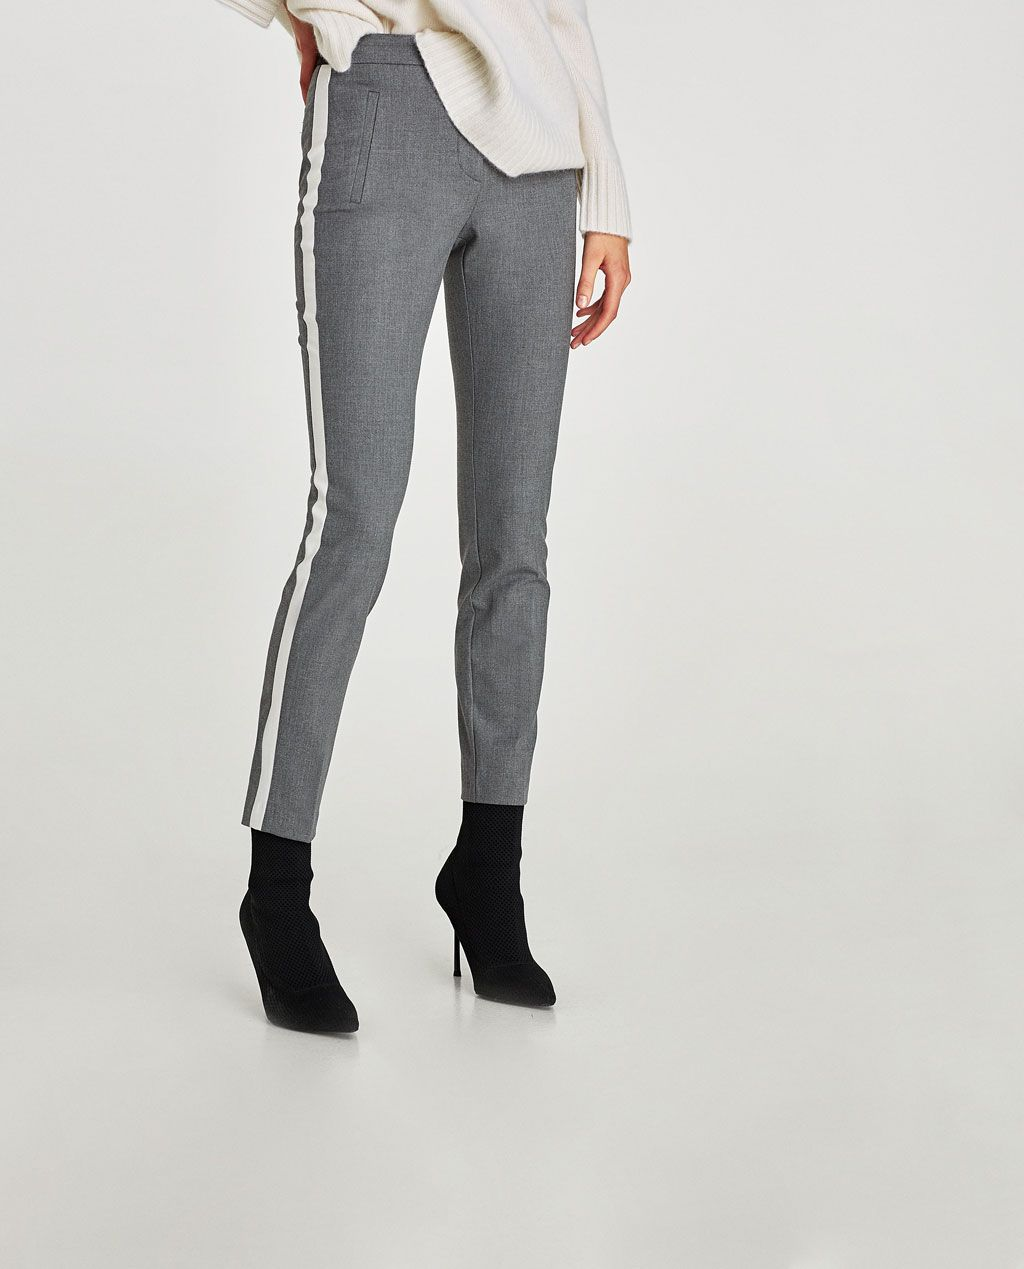 735d1ed39a Image 2 of TROUSERS WITH SIDE STRIPE from Zara   wishlist   Side ...